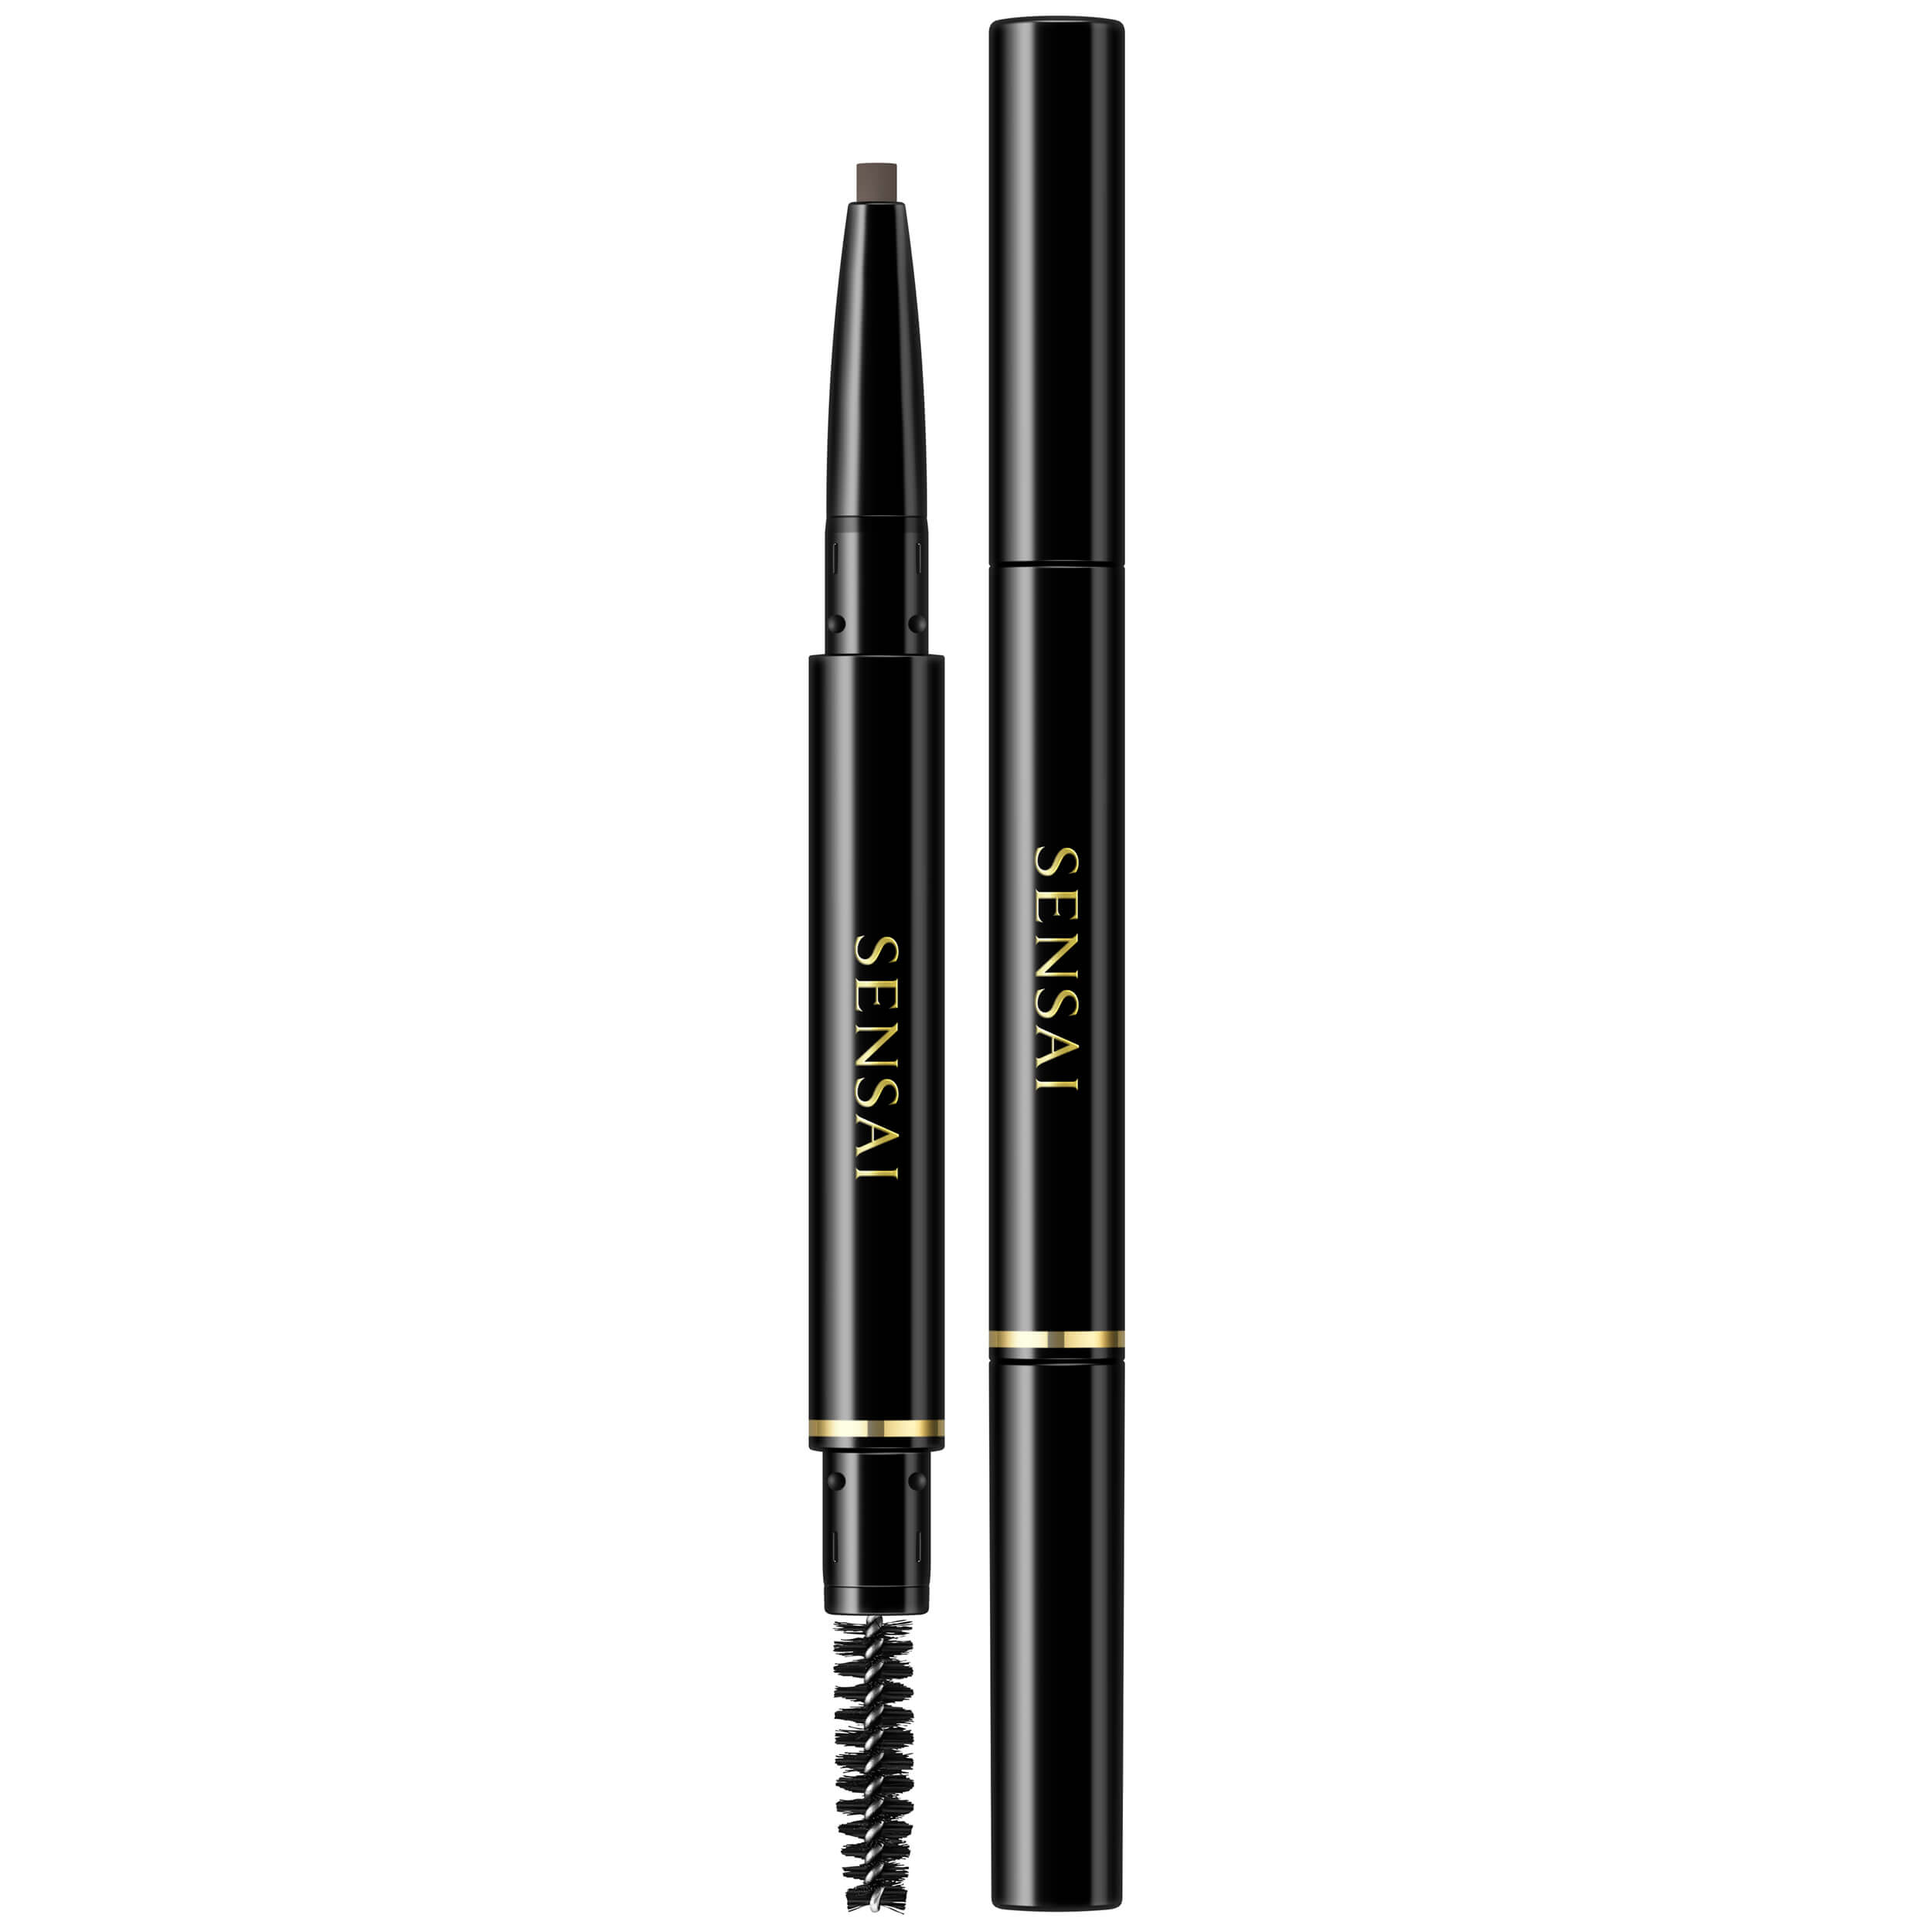 Sensai Styling Eyebrow Pencil 0.2g